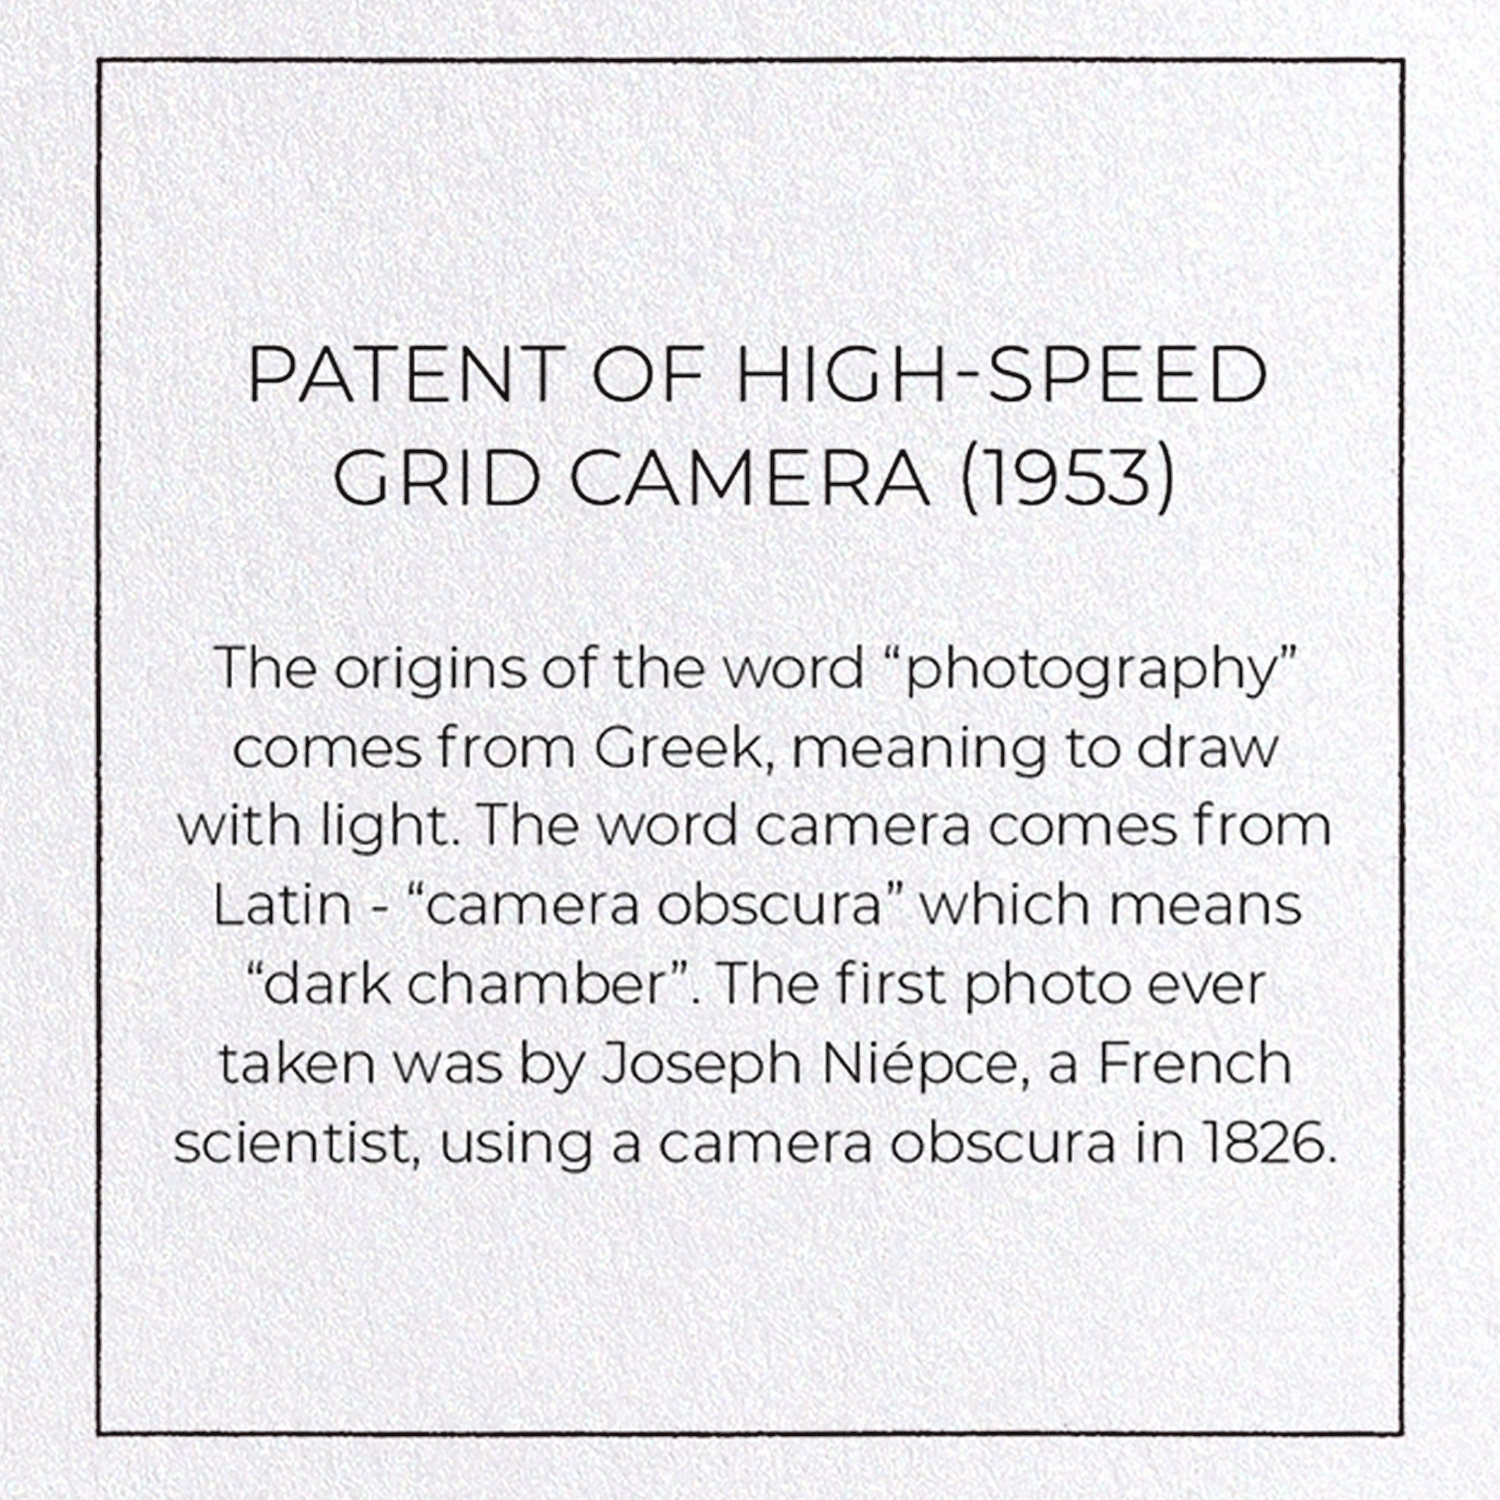 PATENT OF HIGH-SPEED GRID CAMERA (1953)